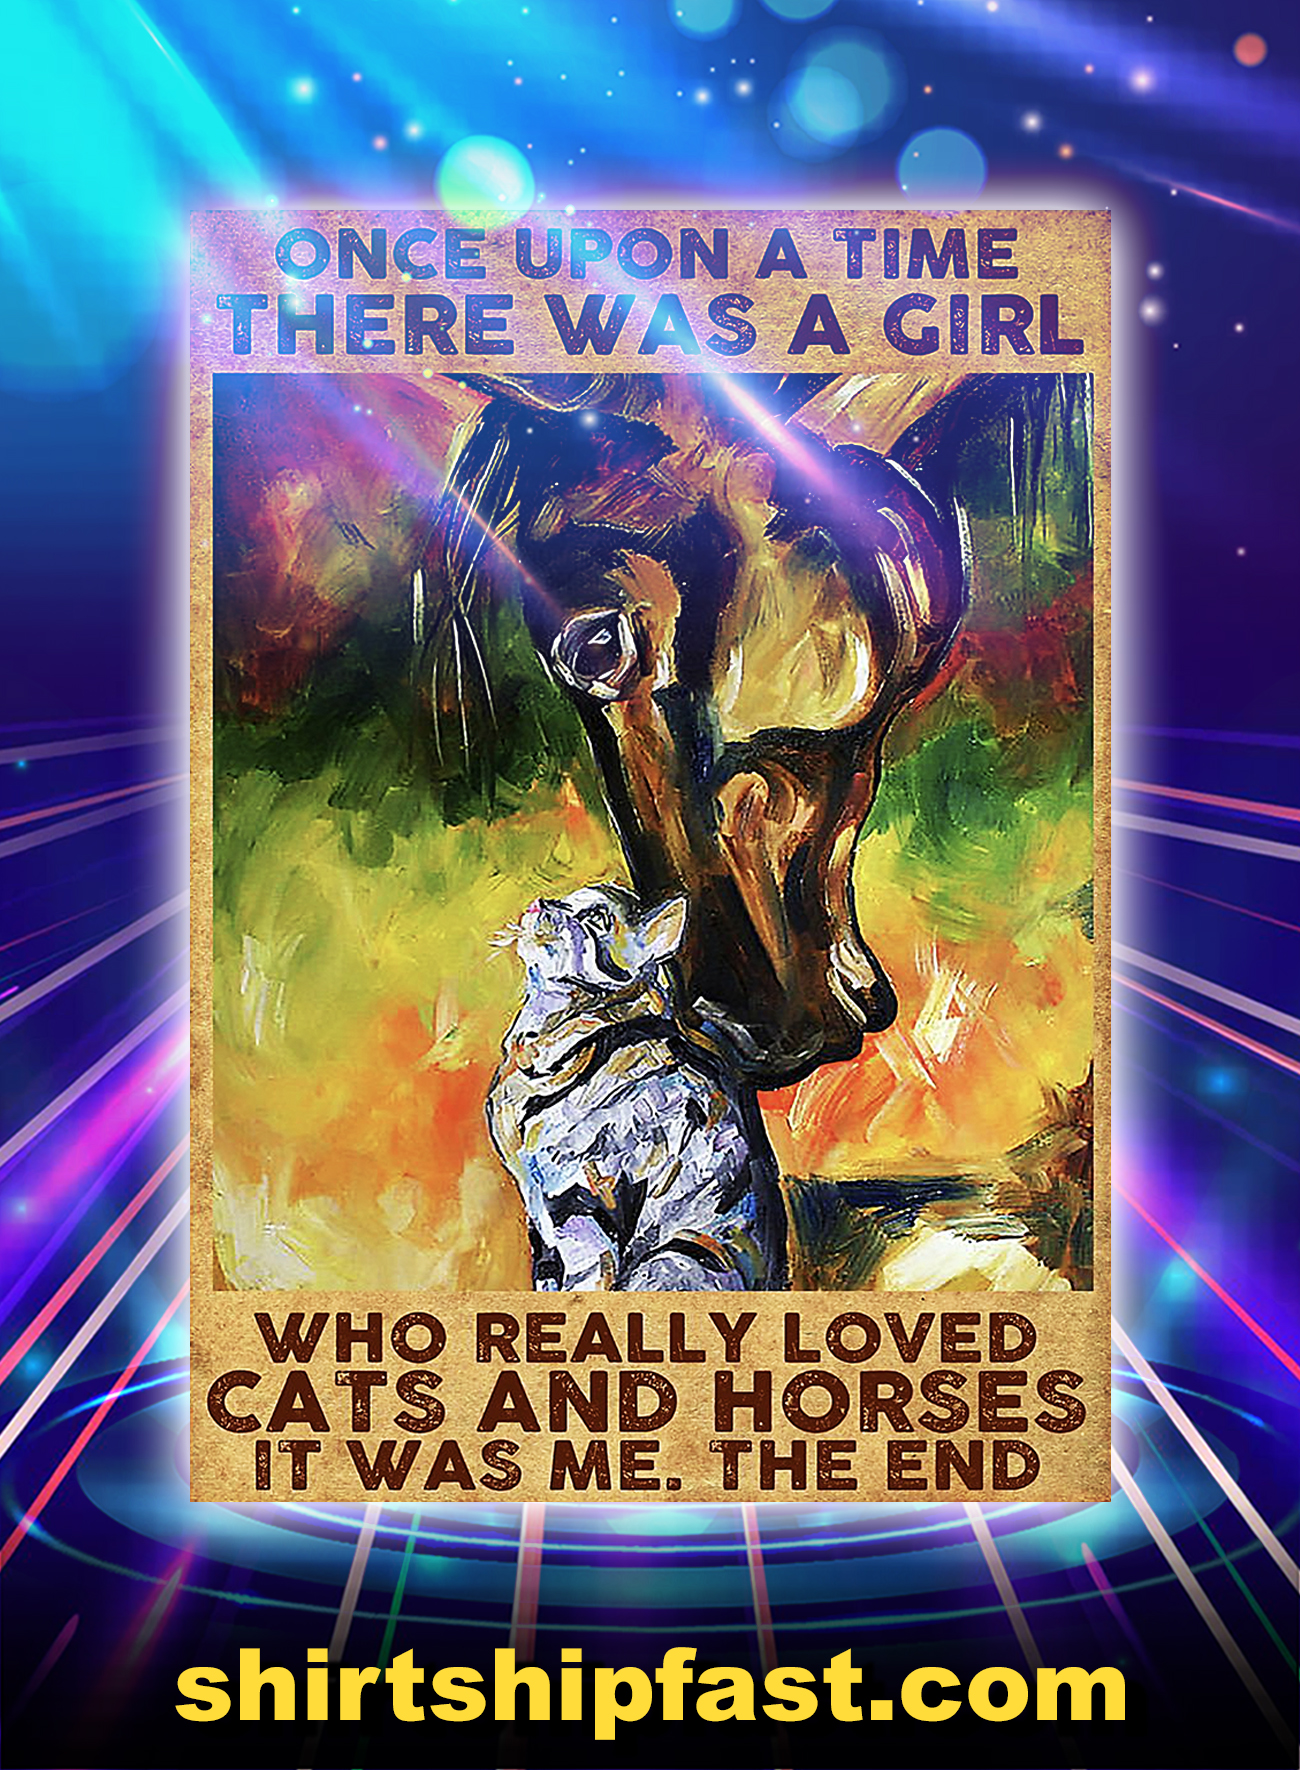 Once upon a time there was a girl who really loved cats and horses poster - A4